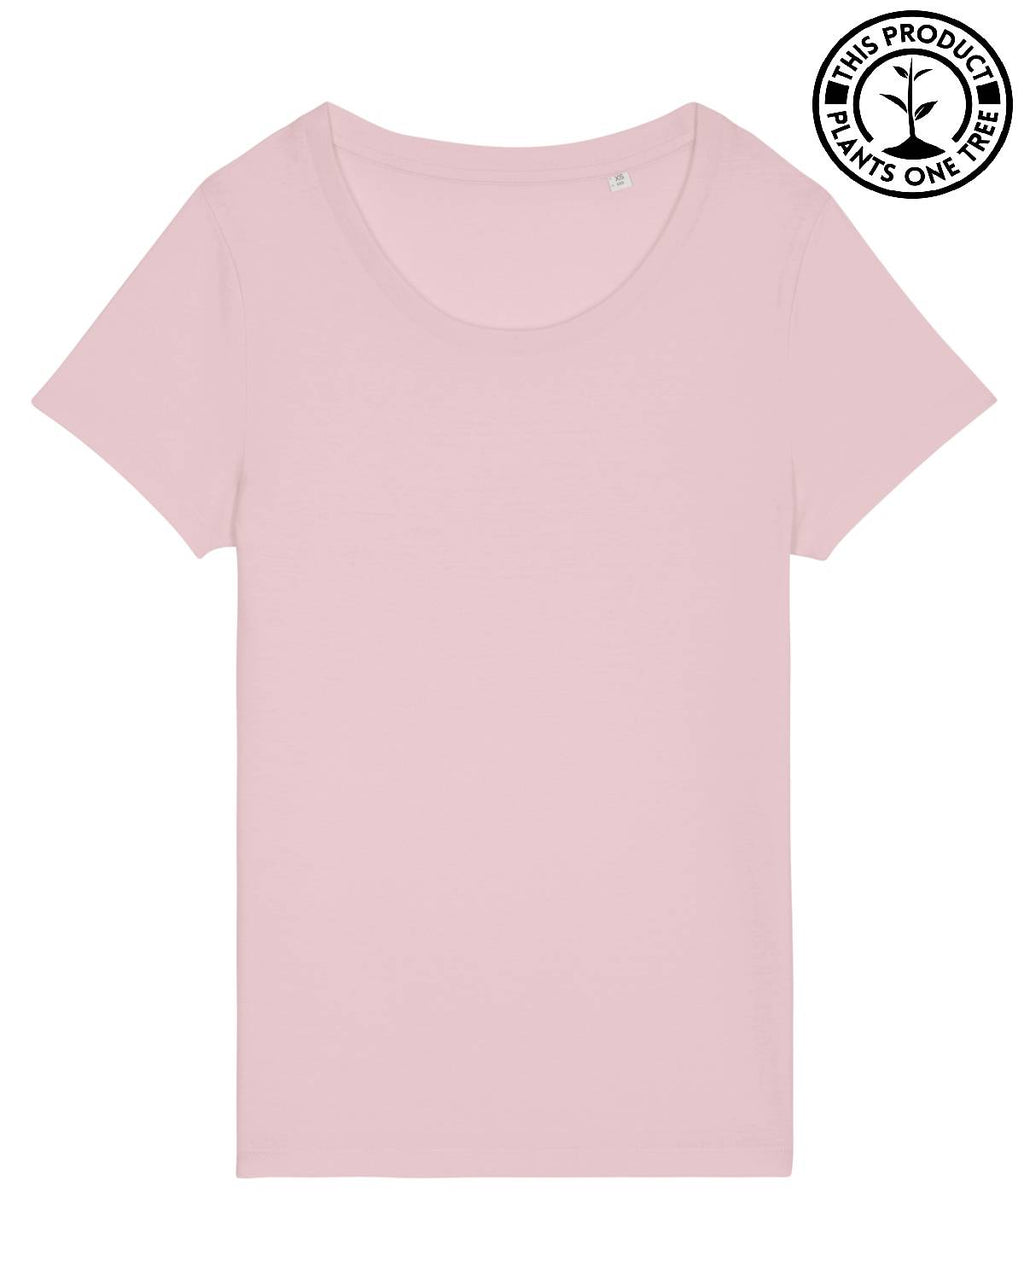 Basic Feminine T-shirt Cotton Pink